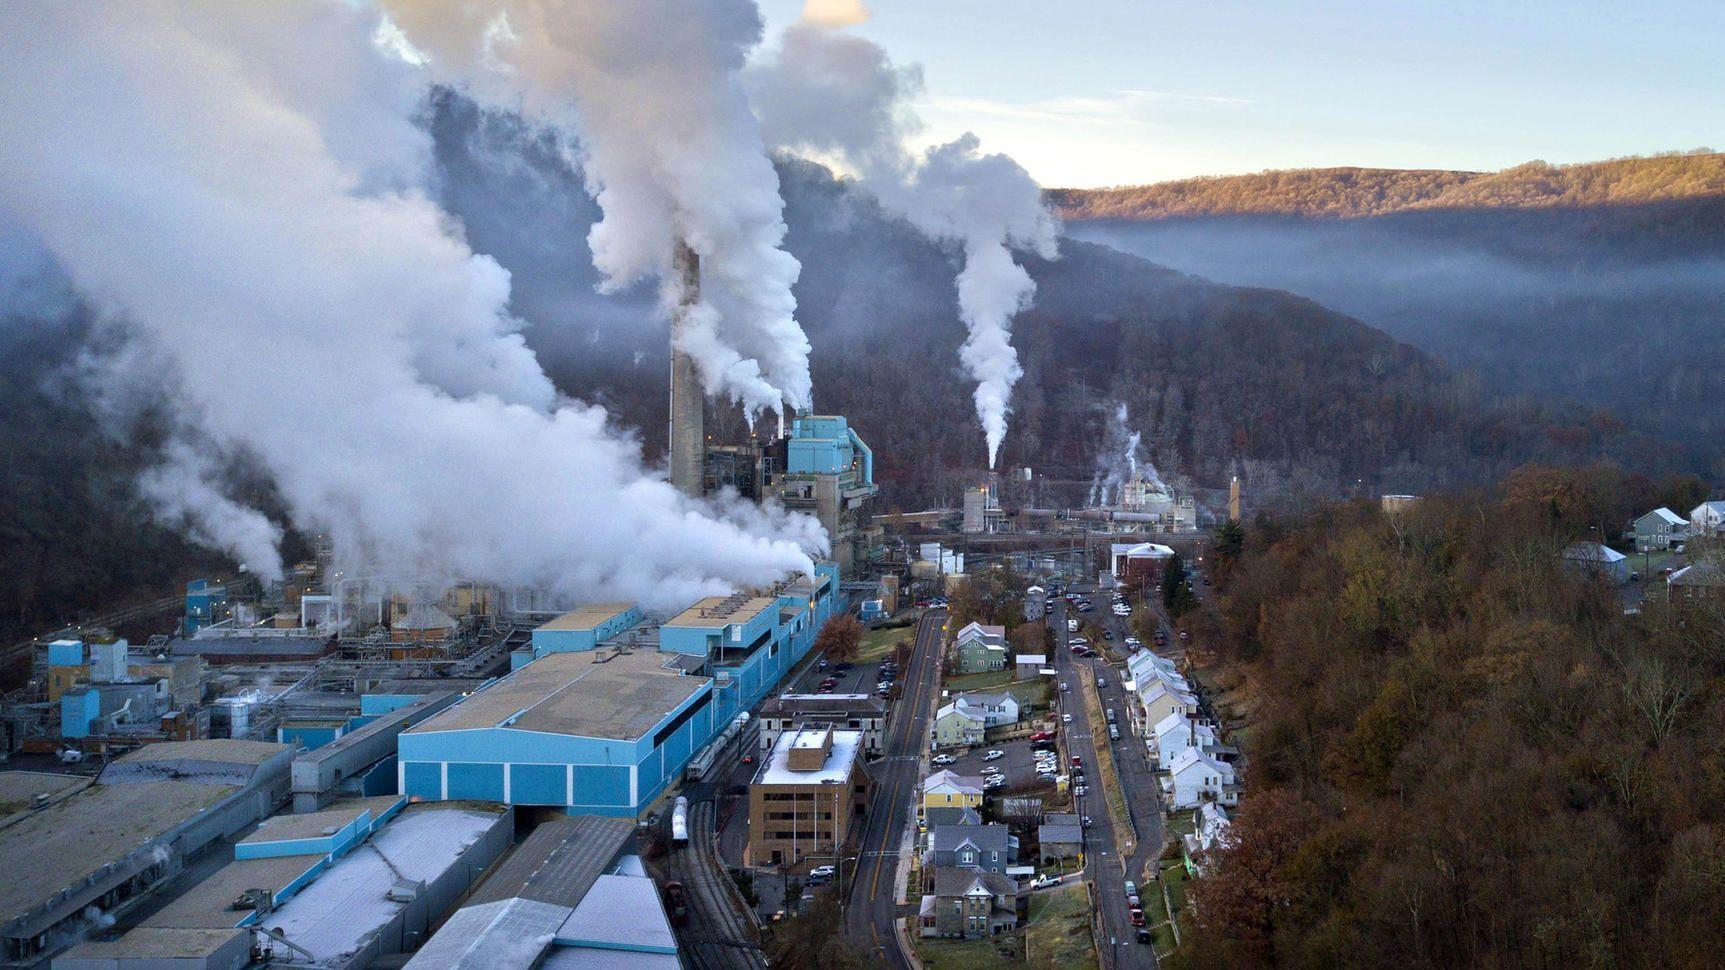 Production to end a month early at Maryland paper mill - Baltimore Sun